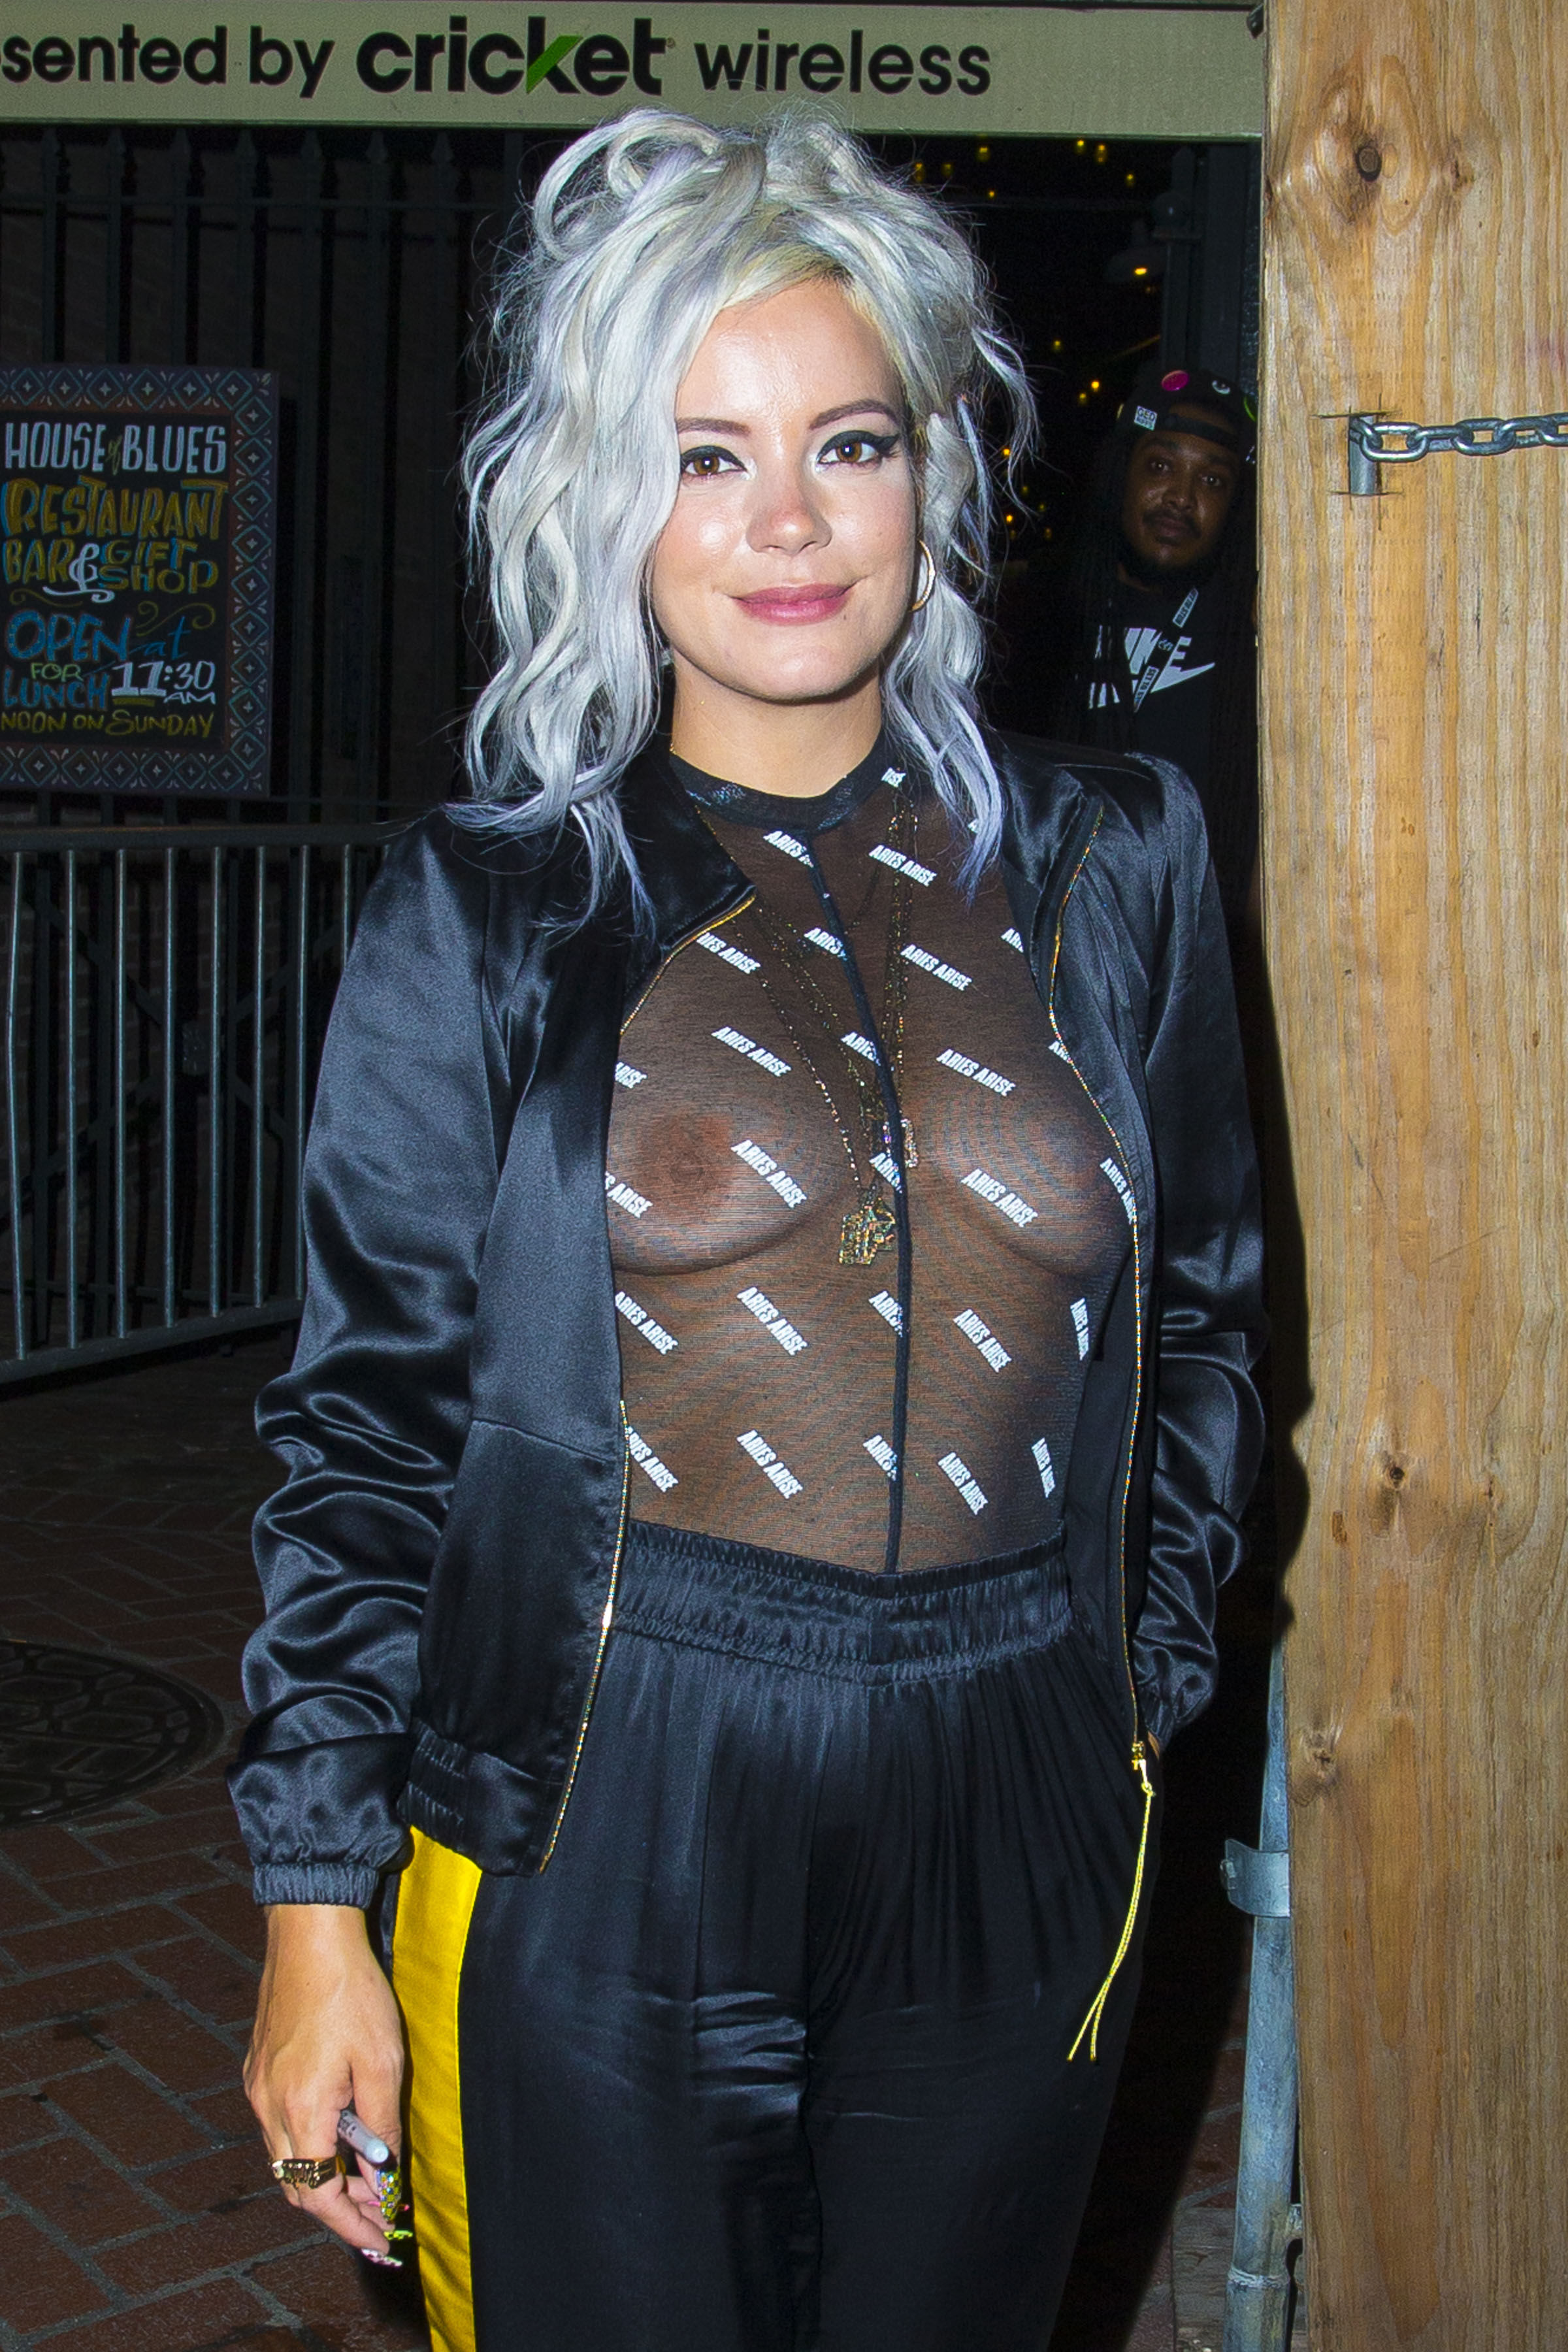 0919040324152_00_Lily-Allen-See-Through-TheFappeningBlog.com-1.jpg